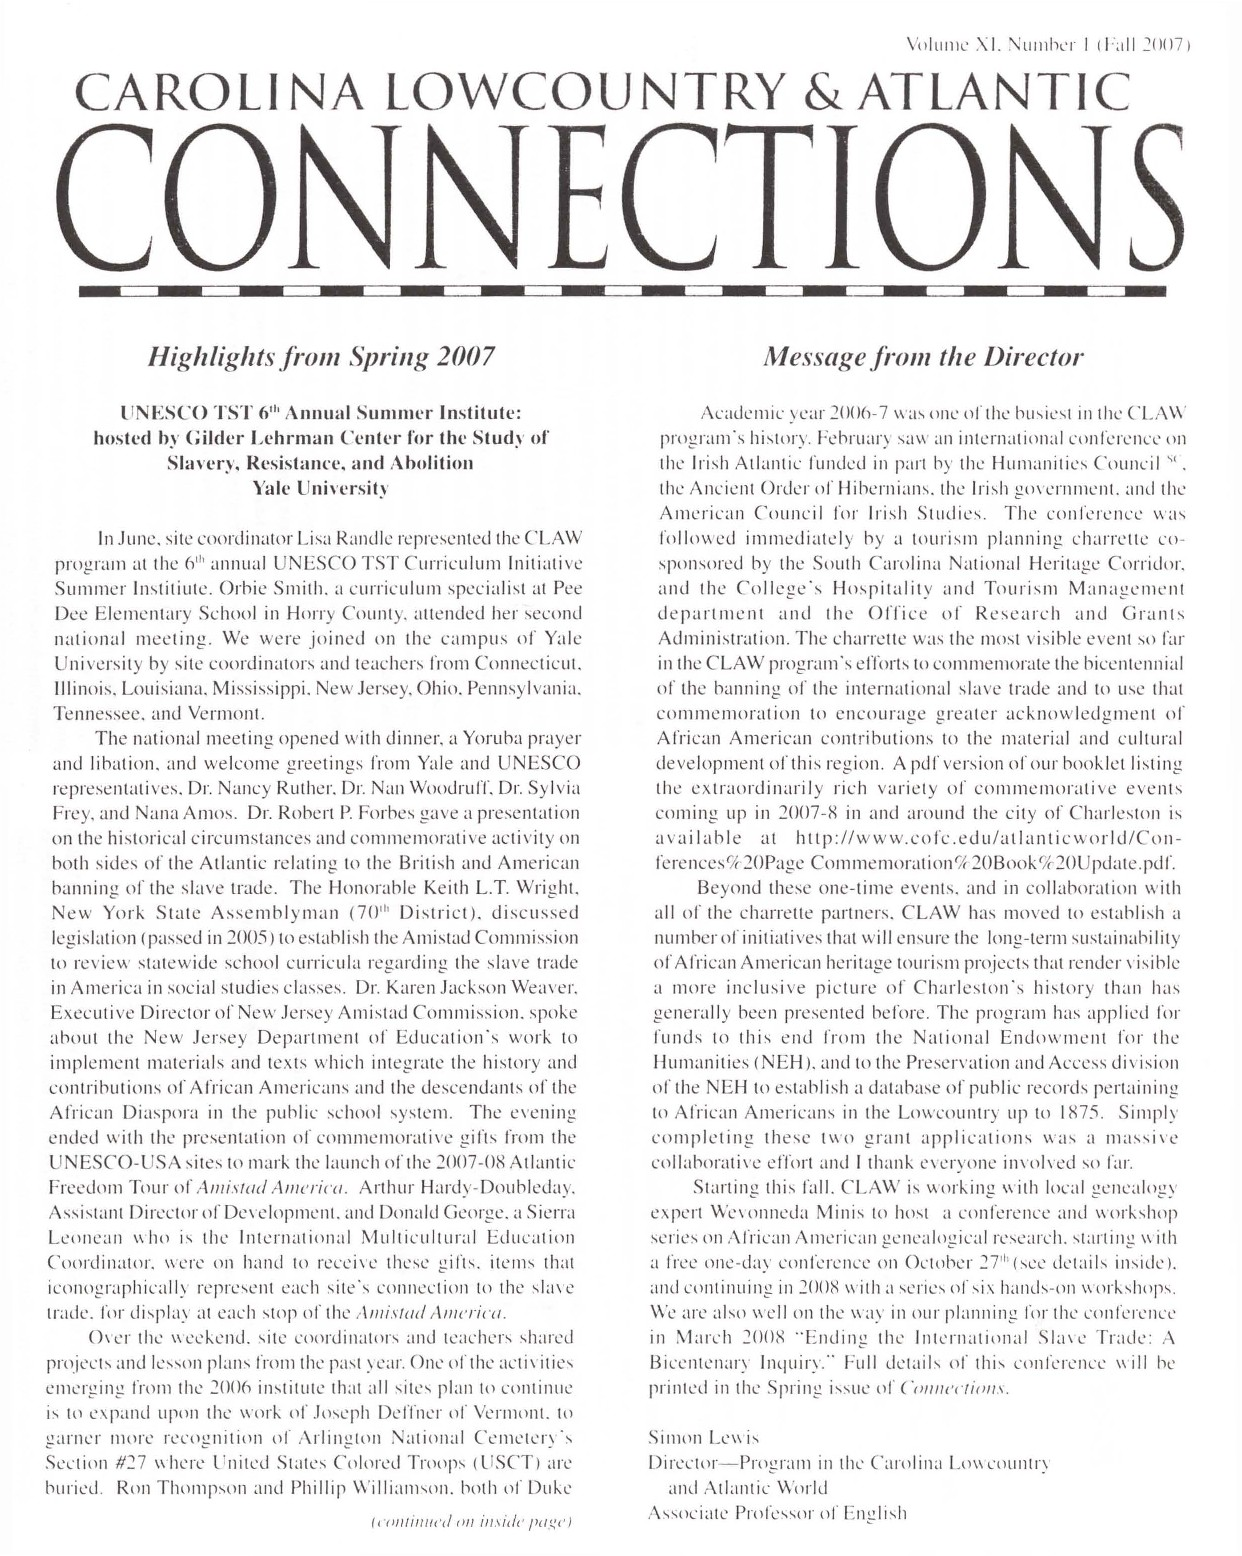 CLAW Newsletter Volume 11, Number 1